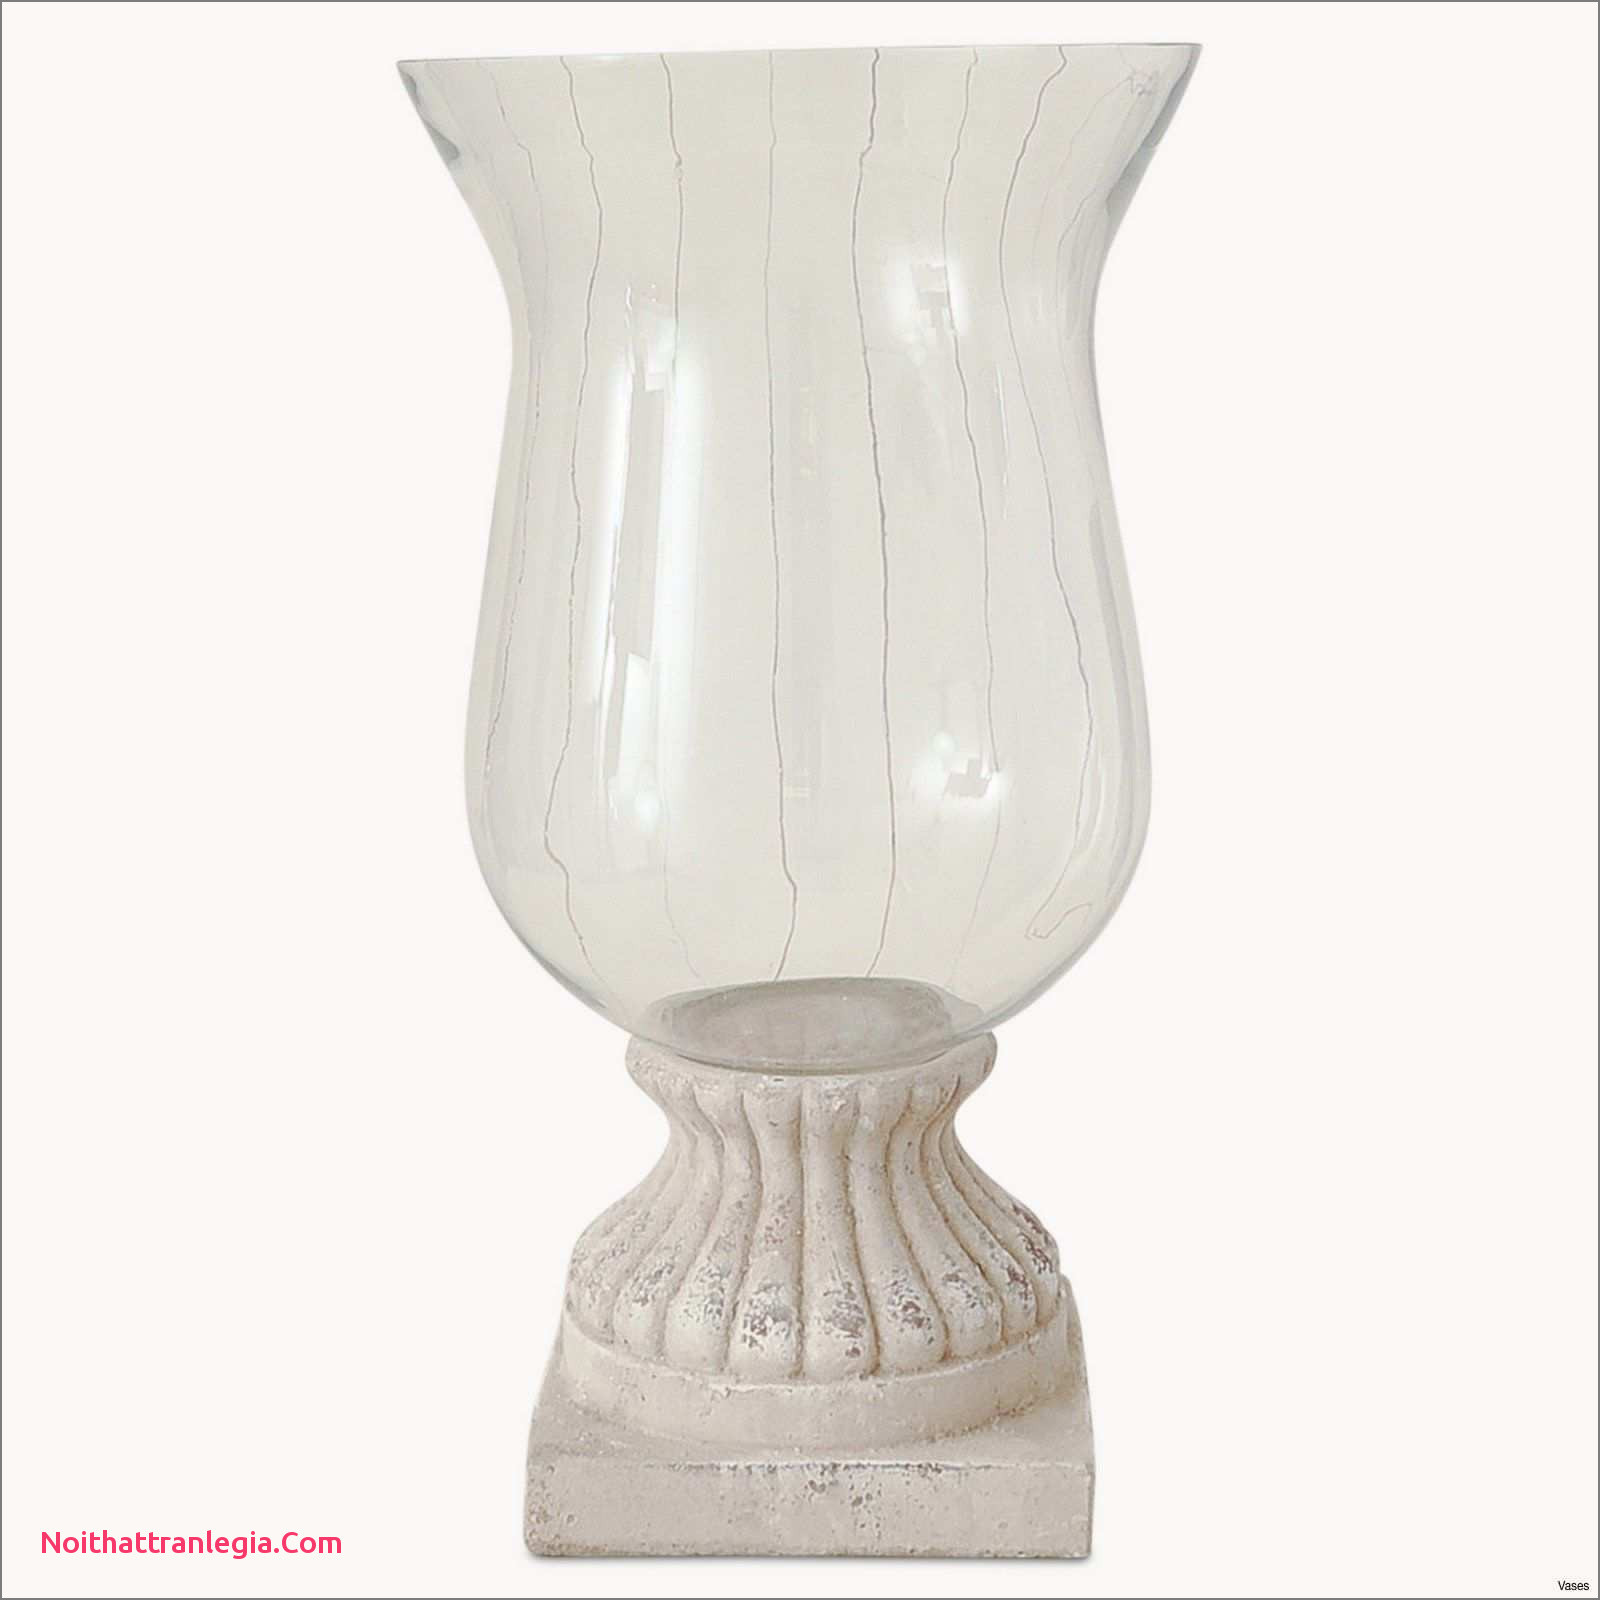 mosaic glass vases for sale of 20 how to make mercury glass vases noithattranlegia vases design intended for vase lighting base gallery gold table lamp base fresh how to make a table lamp 10h